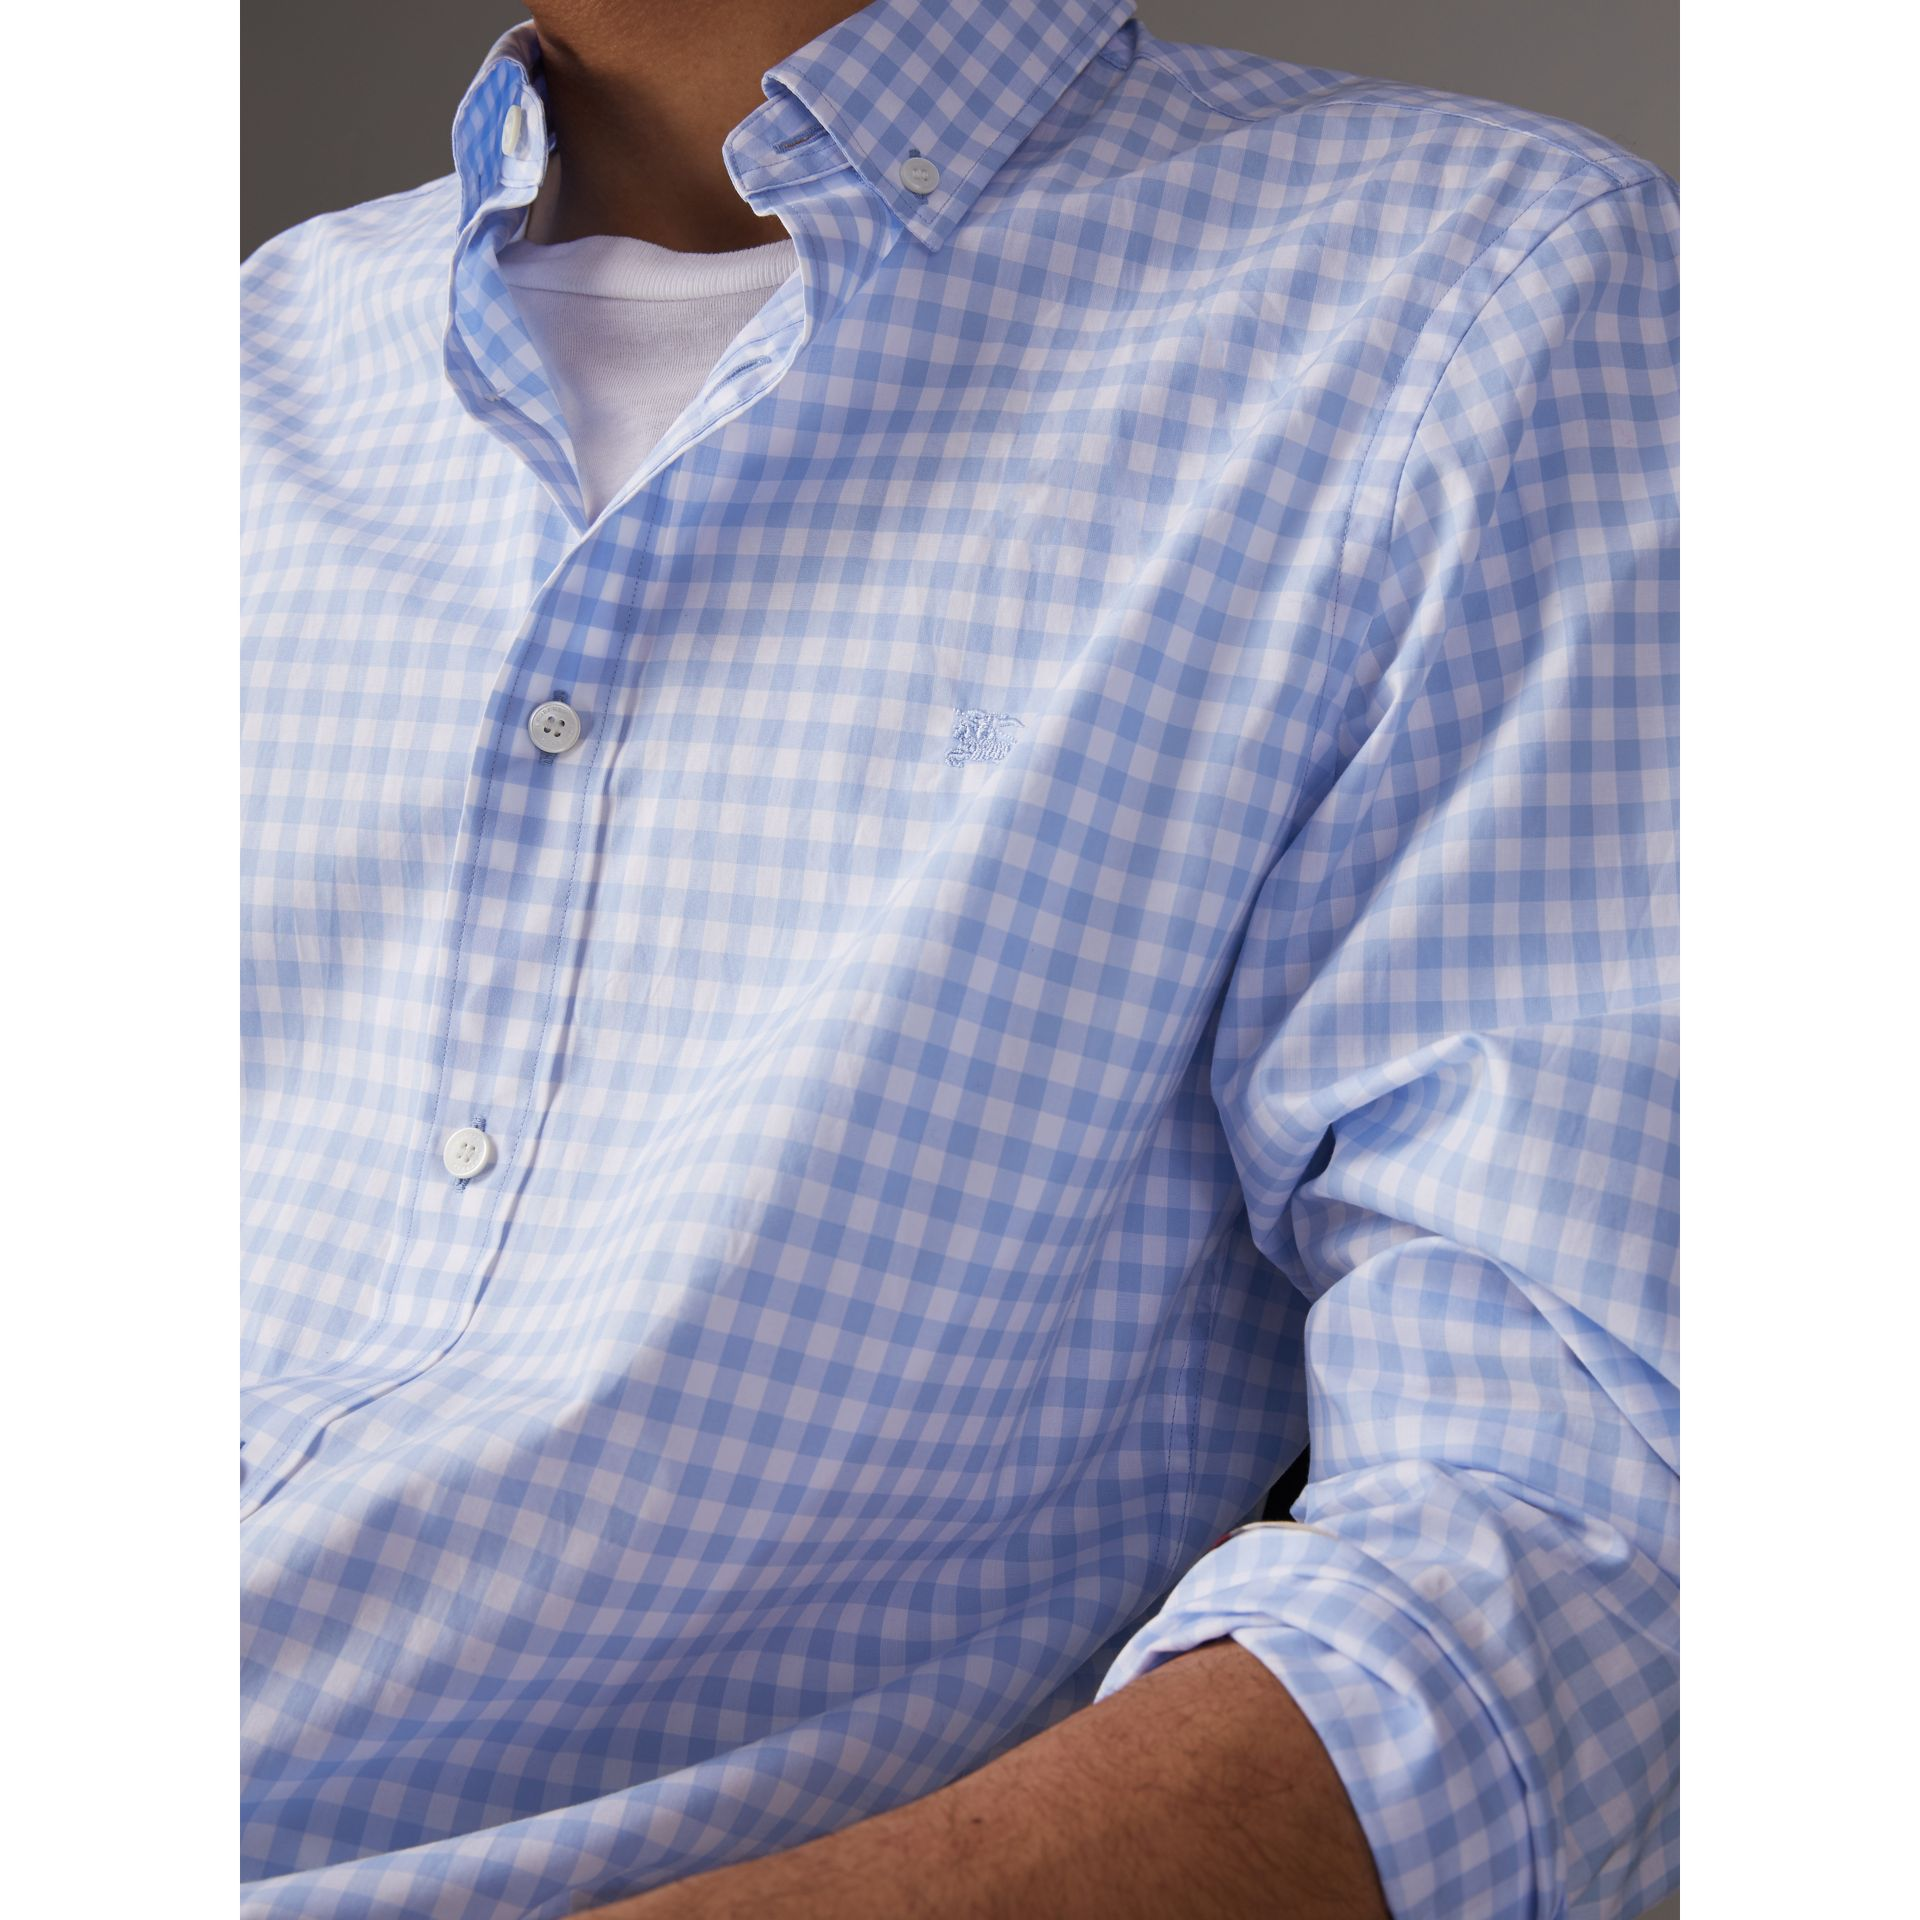 Button-down Collar Gingham Cotton Shirt in Pale Blue - Men | Burberry - gallery image 2